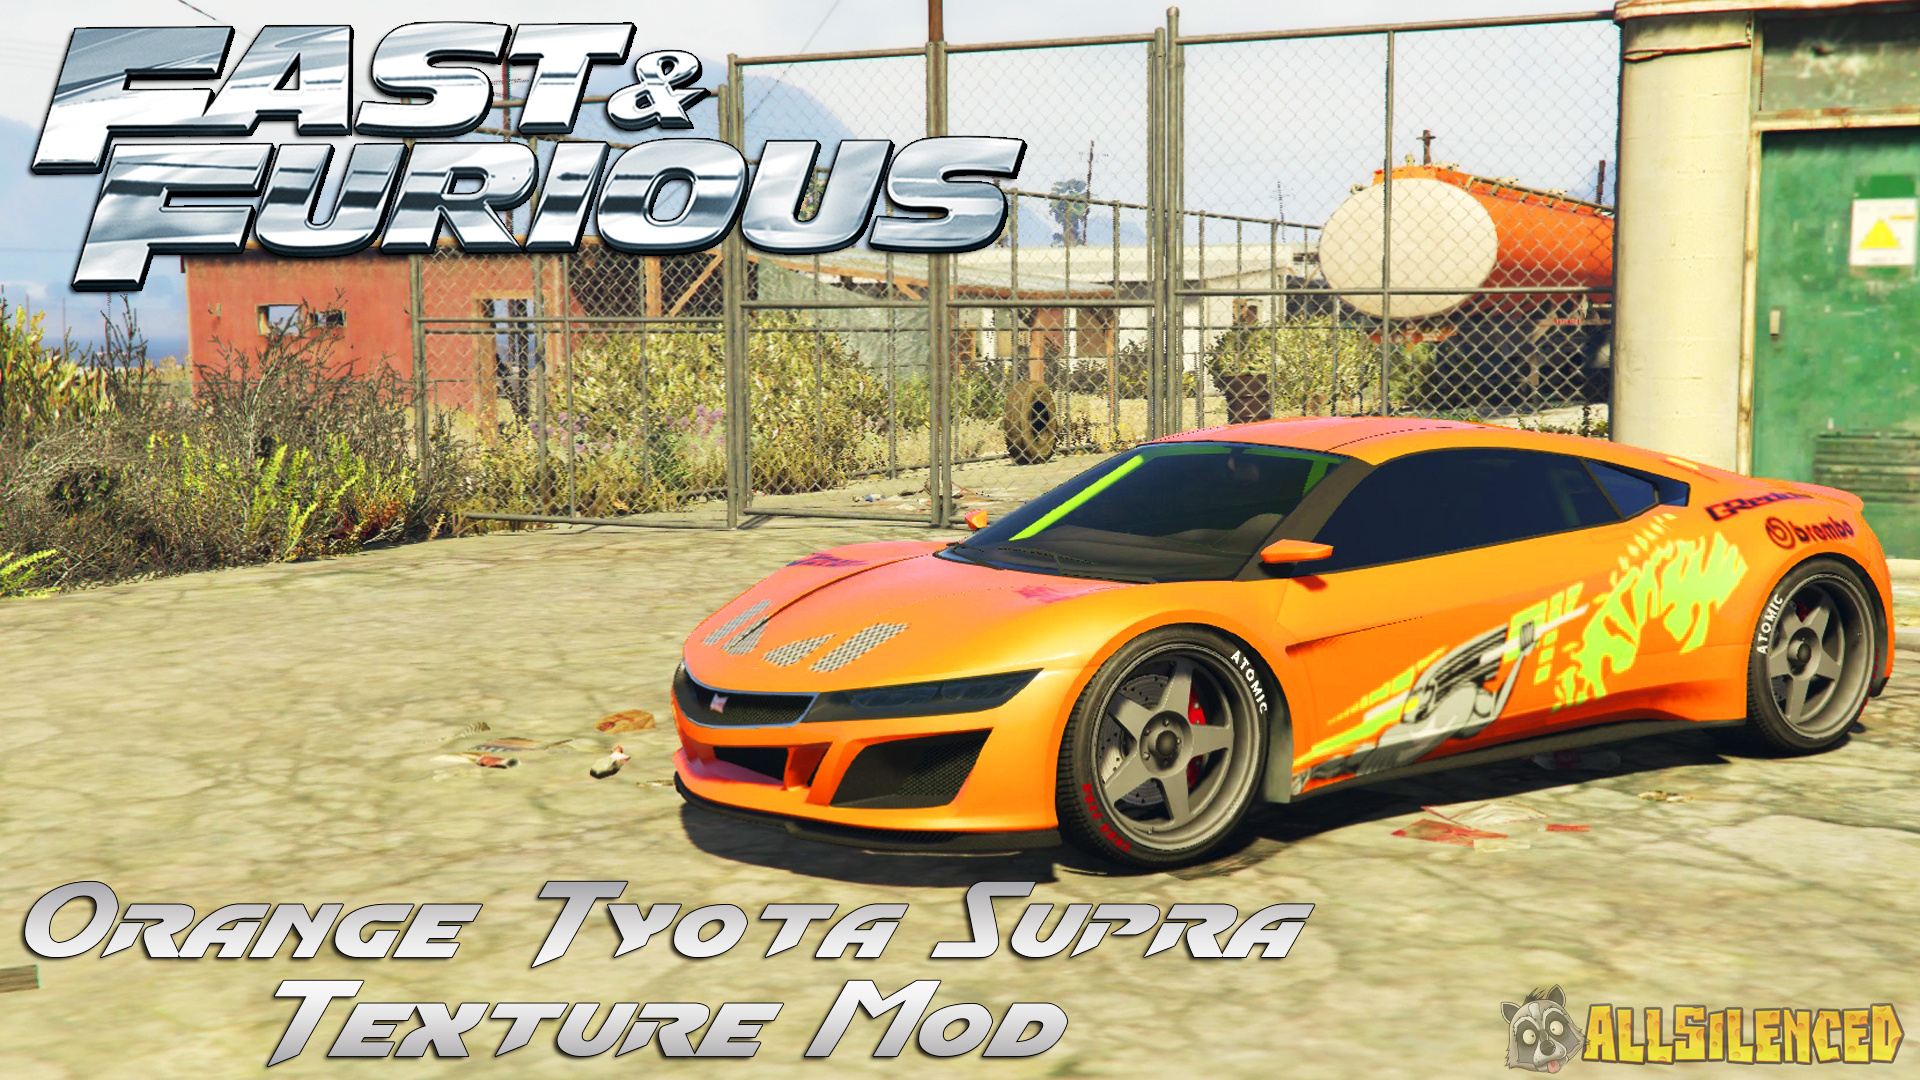 Toyota Supra From The Fast And The Furious Fast And Furious Orange Toyota Supra Texture Mod Gta5 Mods